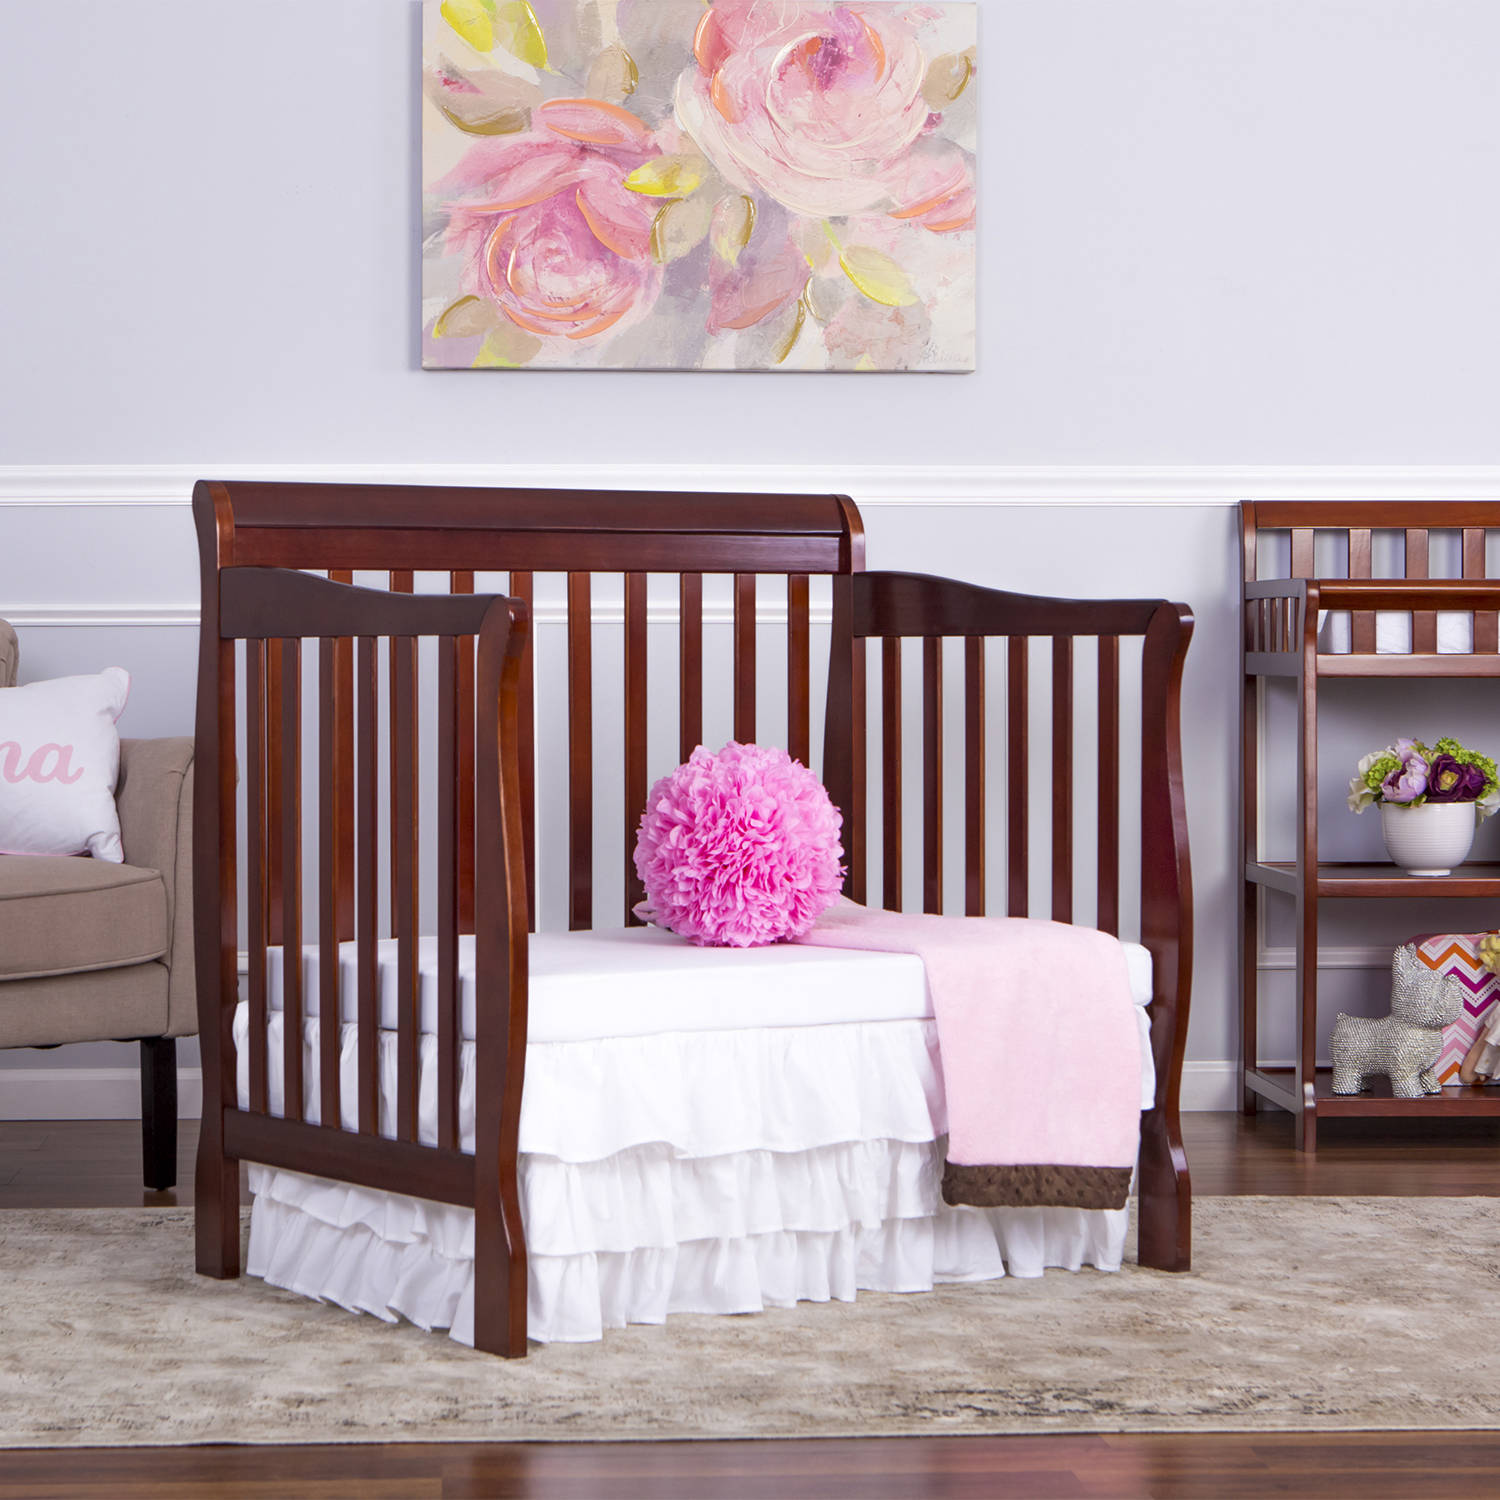 Baby bed turns into toddler bed - Baby Bed Turns Into Toddler Bed 12